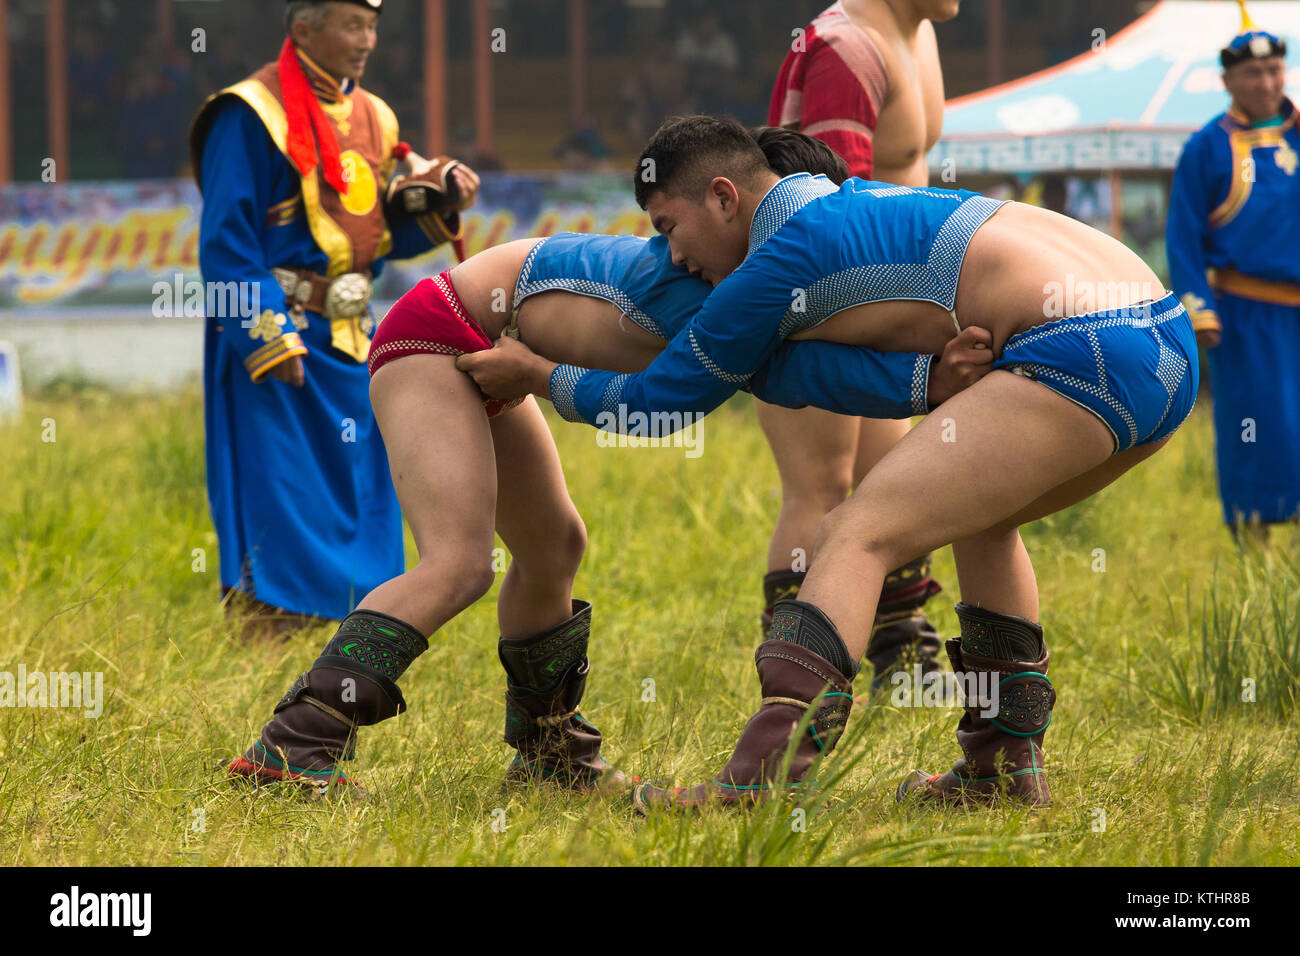 Wrestlig is very popular in Mongolia and the winners are very respected and adored. Naadam festival in Bulgan. Stock Photo